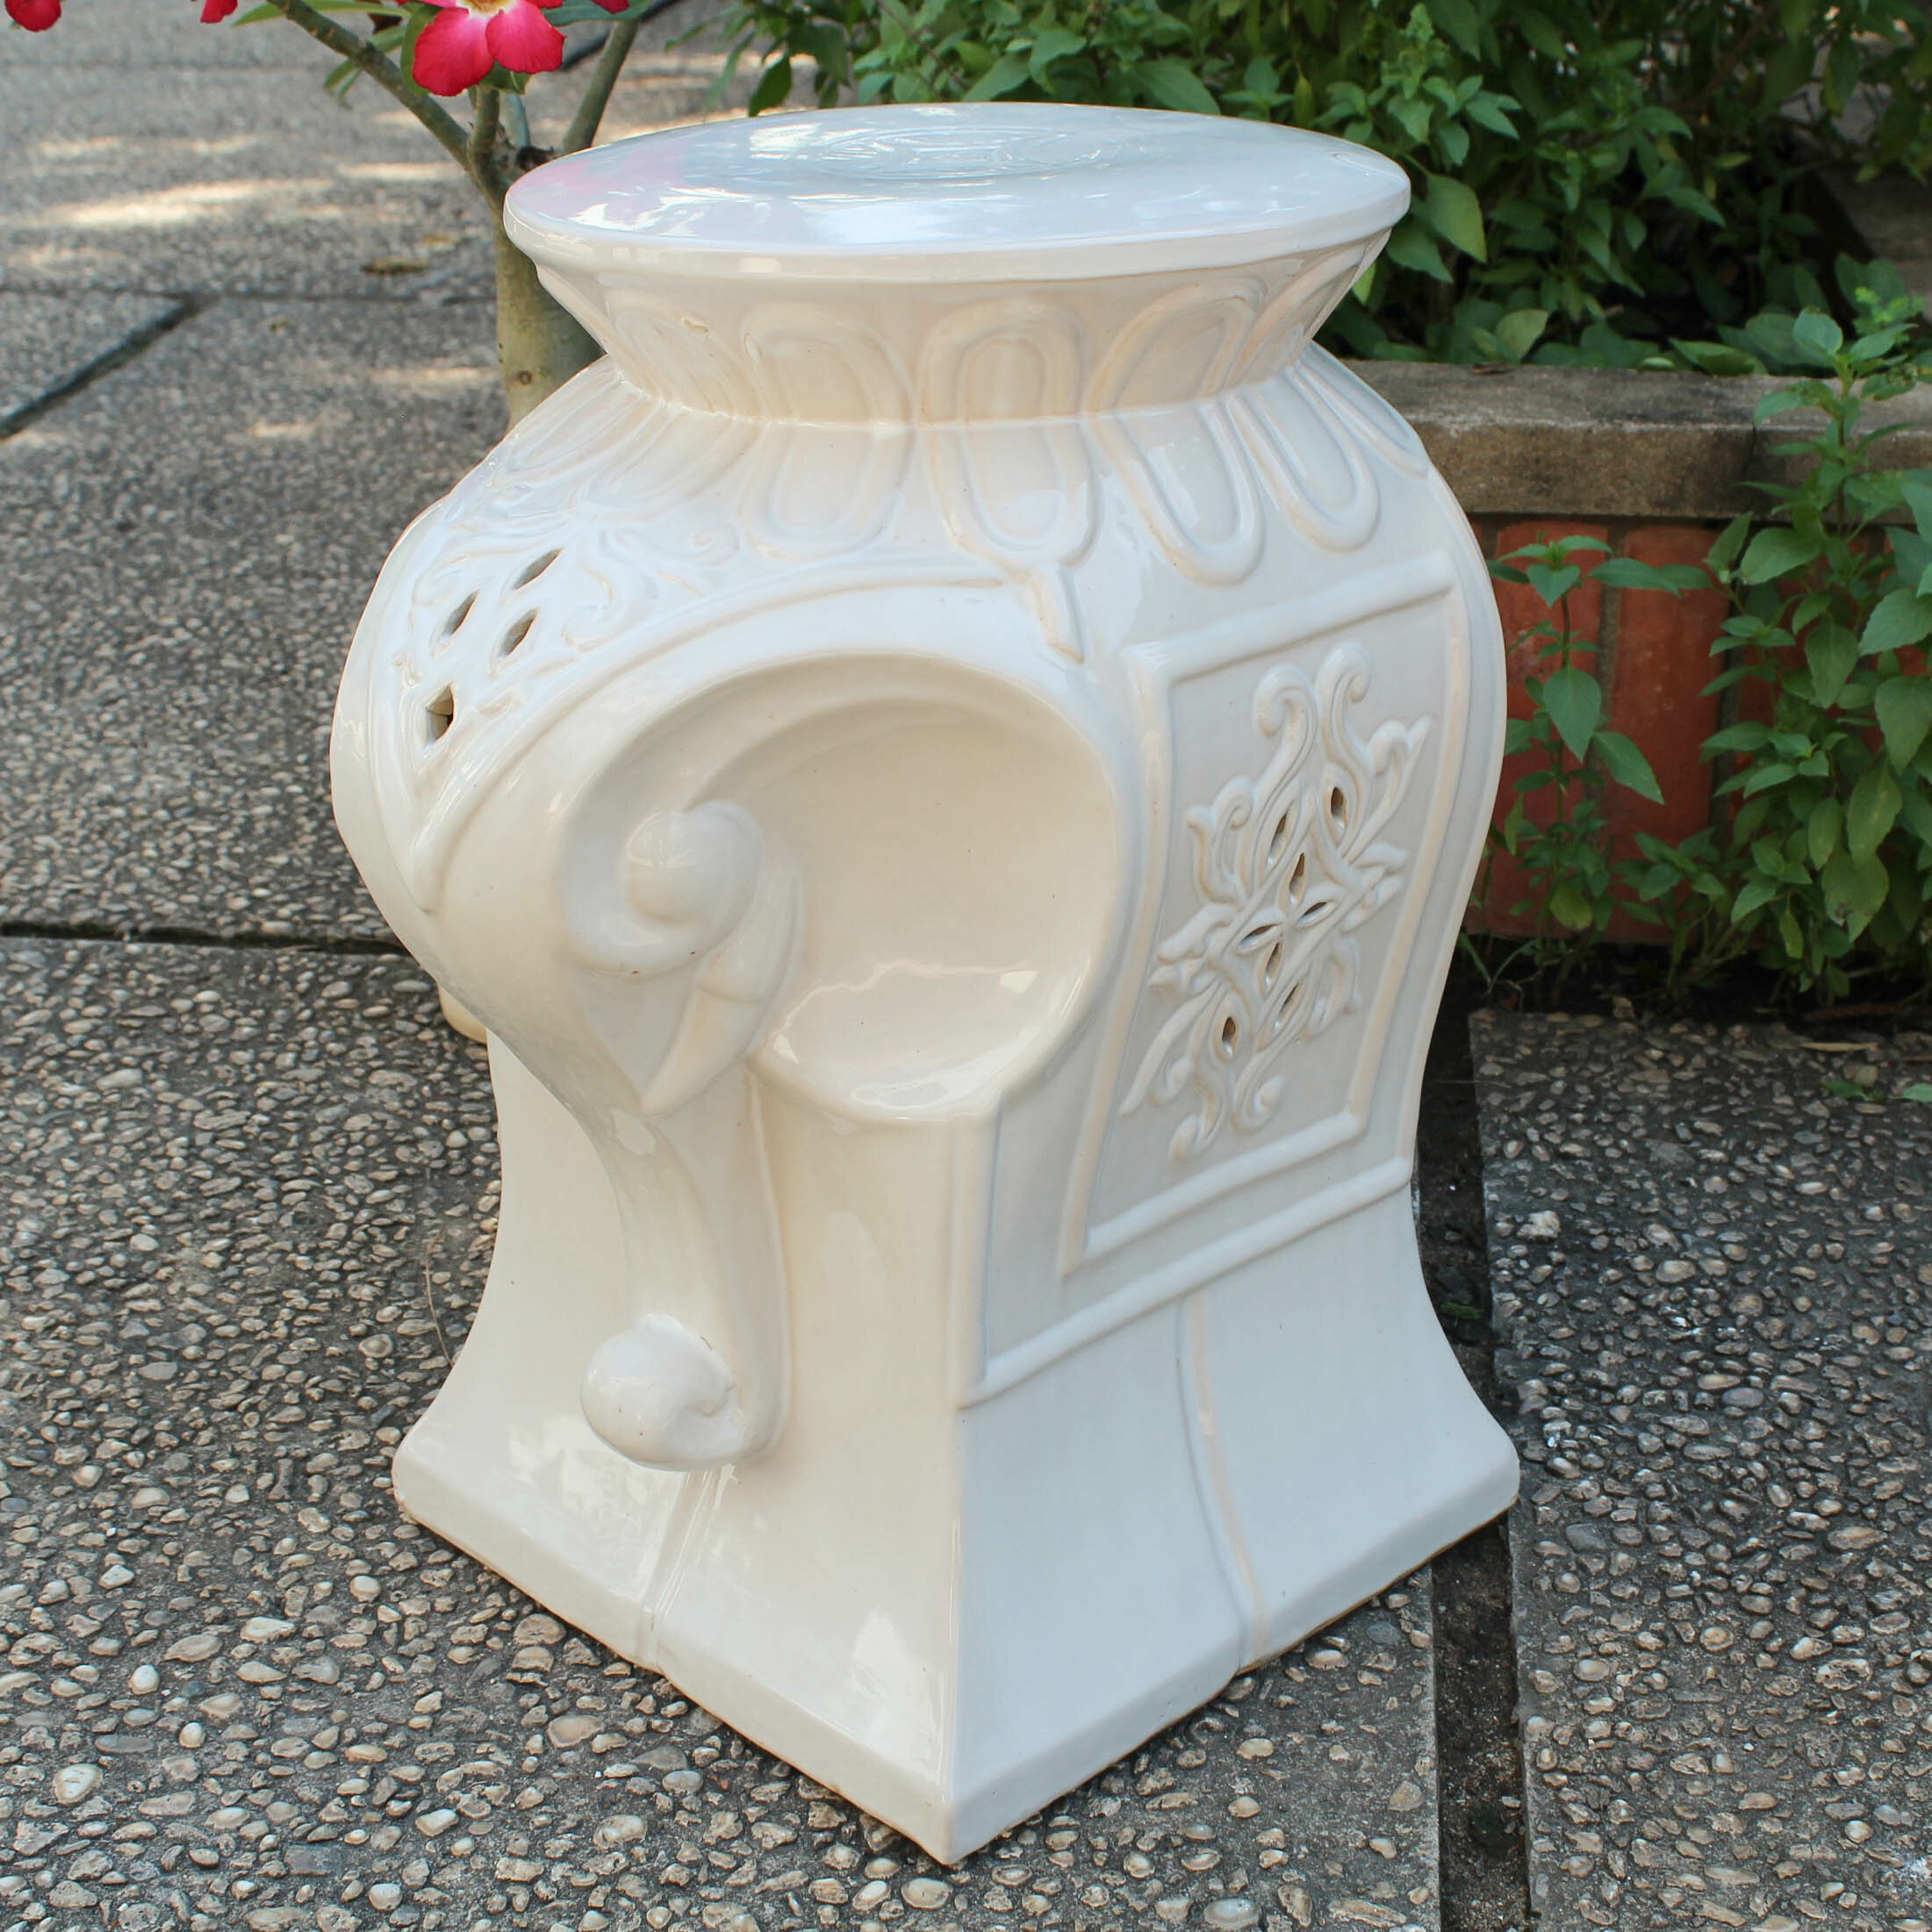 Burleson Elephant Ceramic Garden Stool Regarding Karlov Ceramic Garden Stools (View 12 of 25)